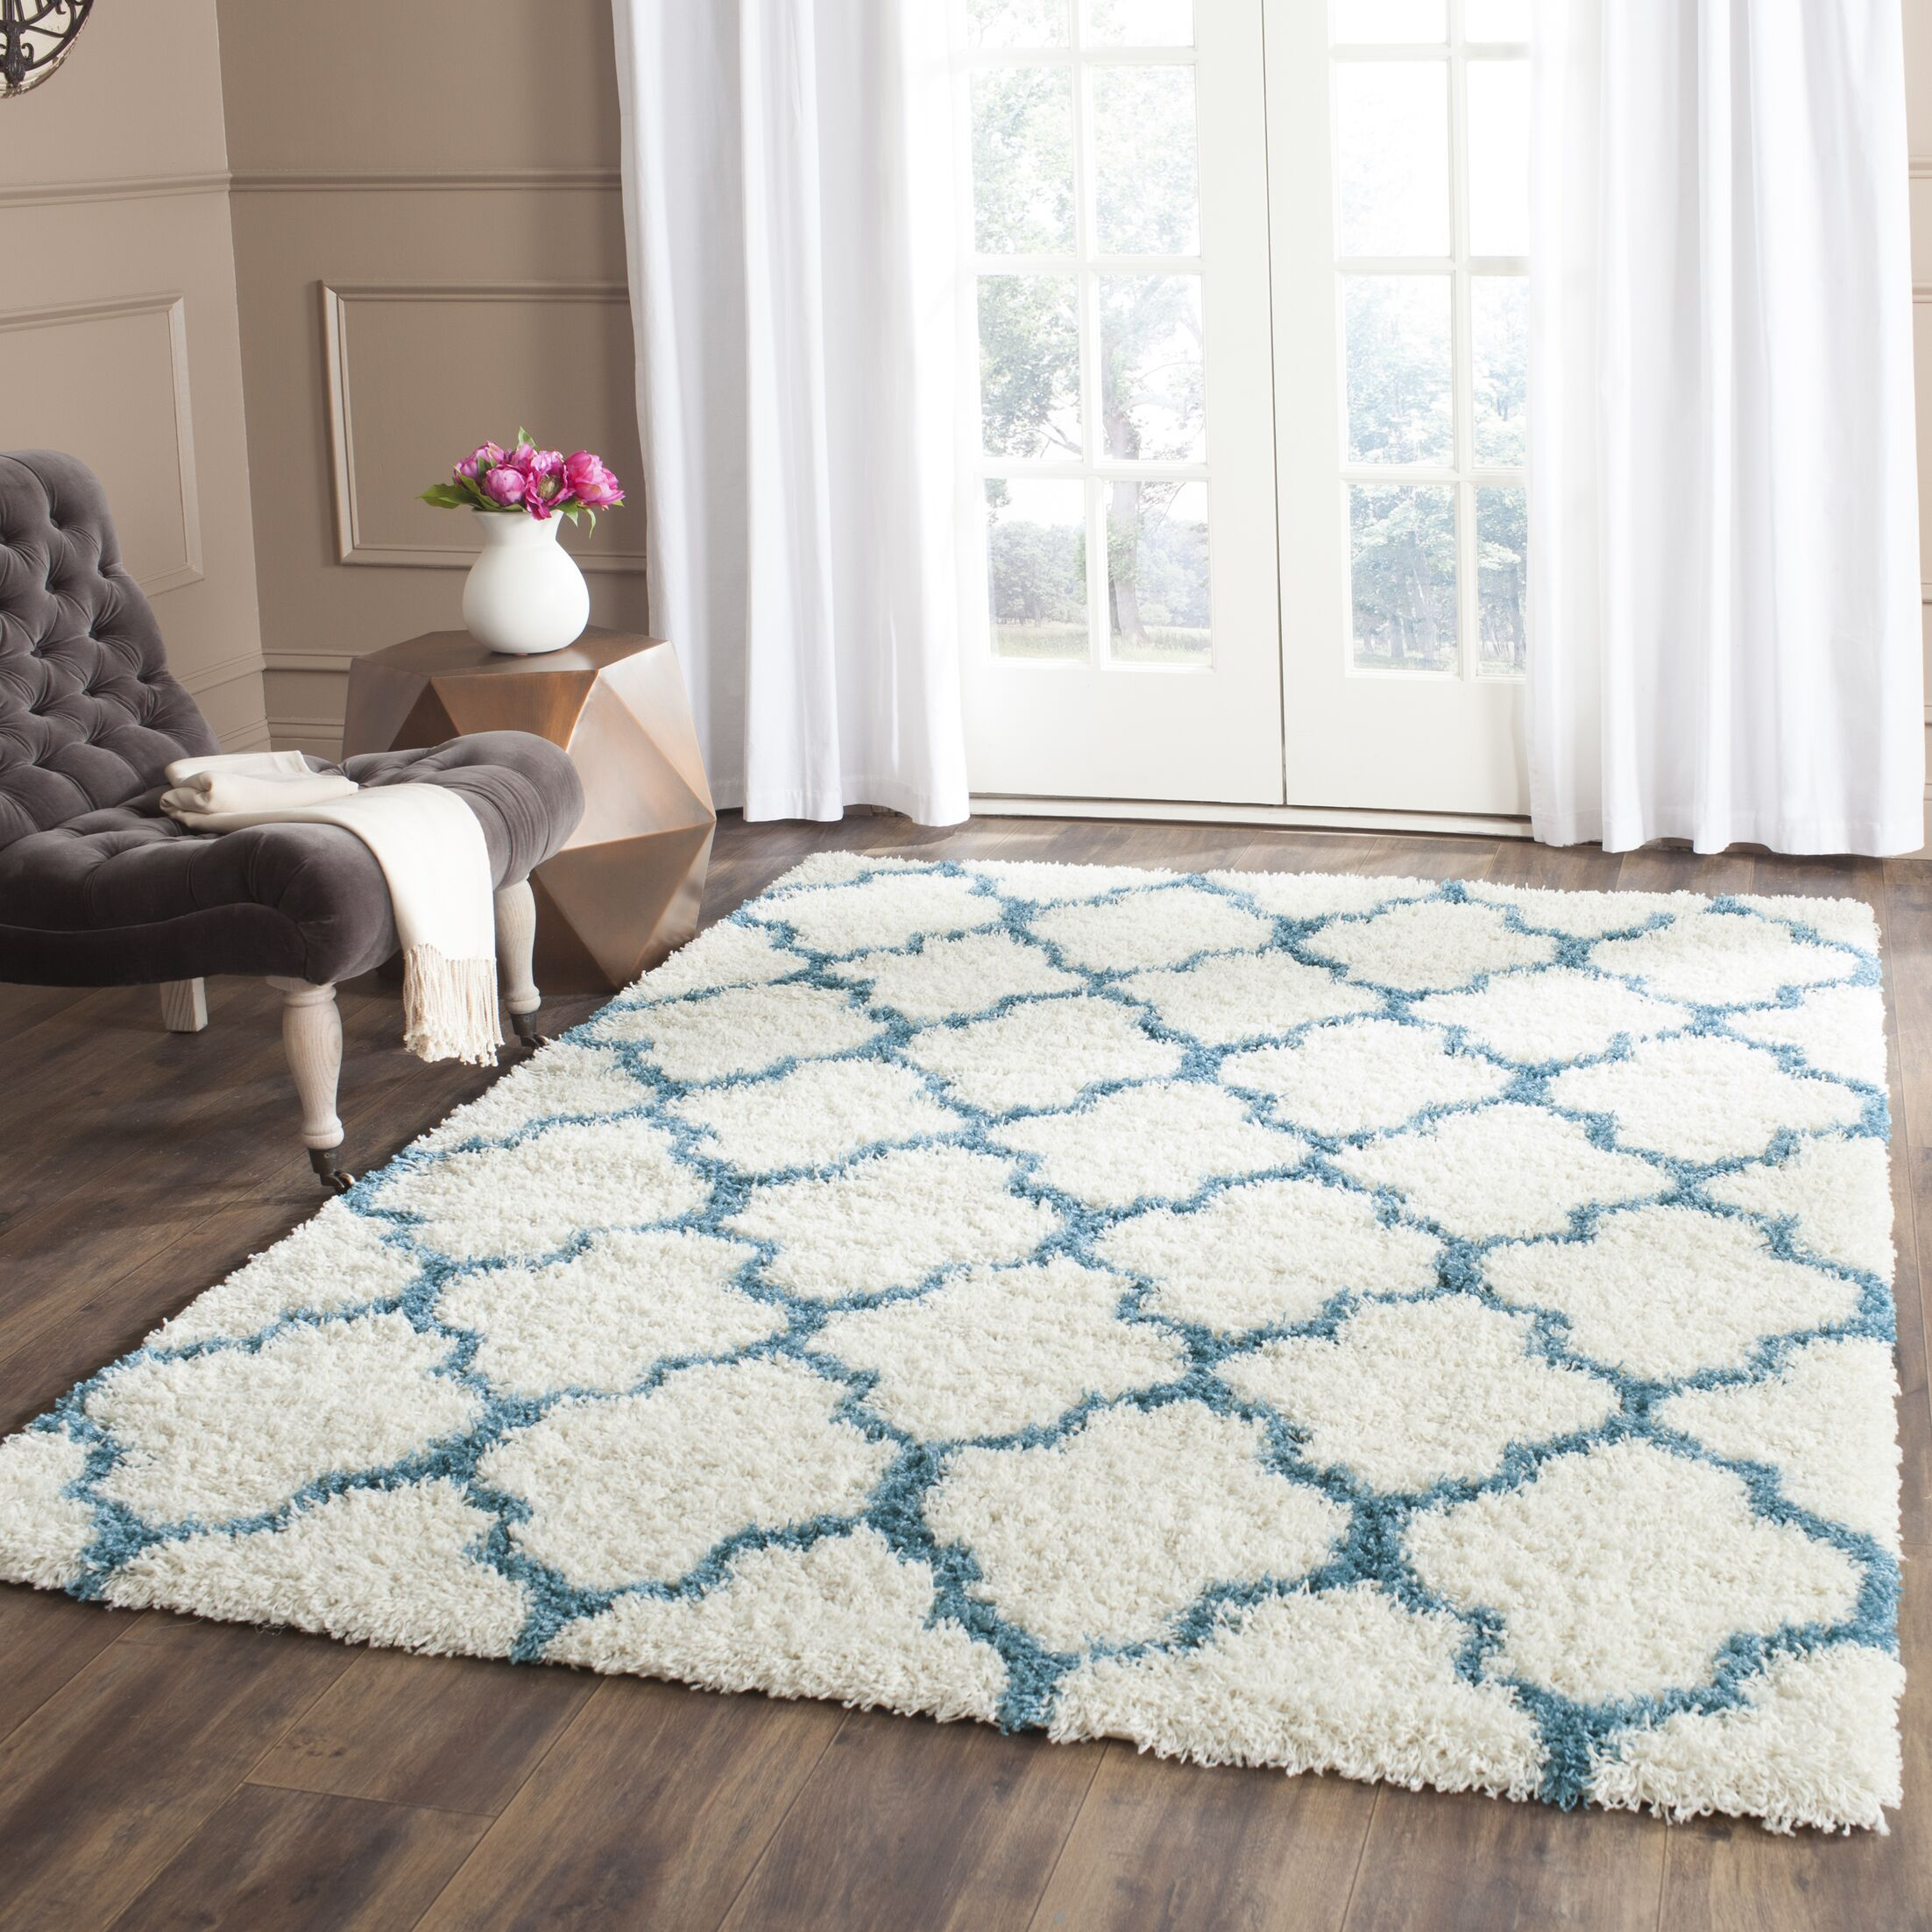 Martin Kids Ivory/Blue Area Rug Rug Size: Rectangle 8'6